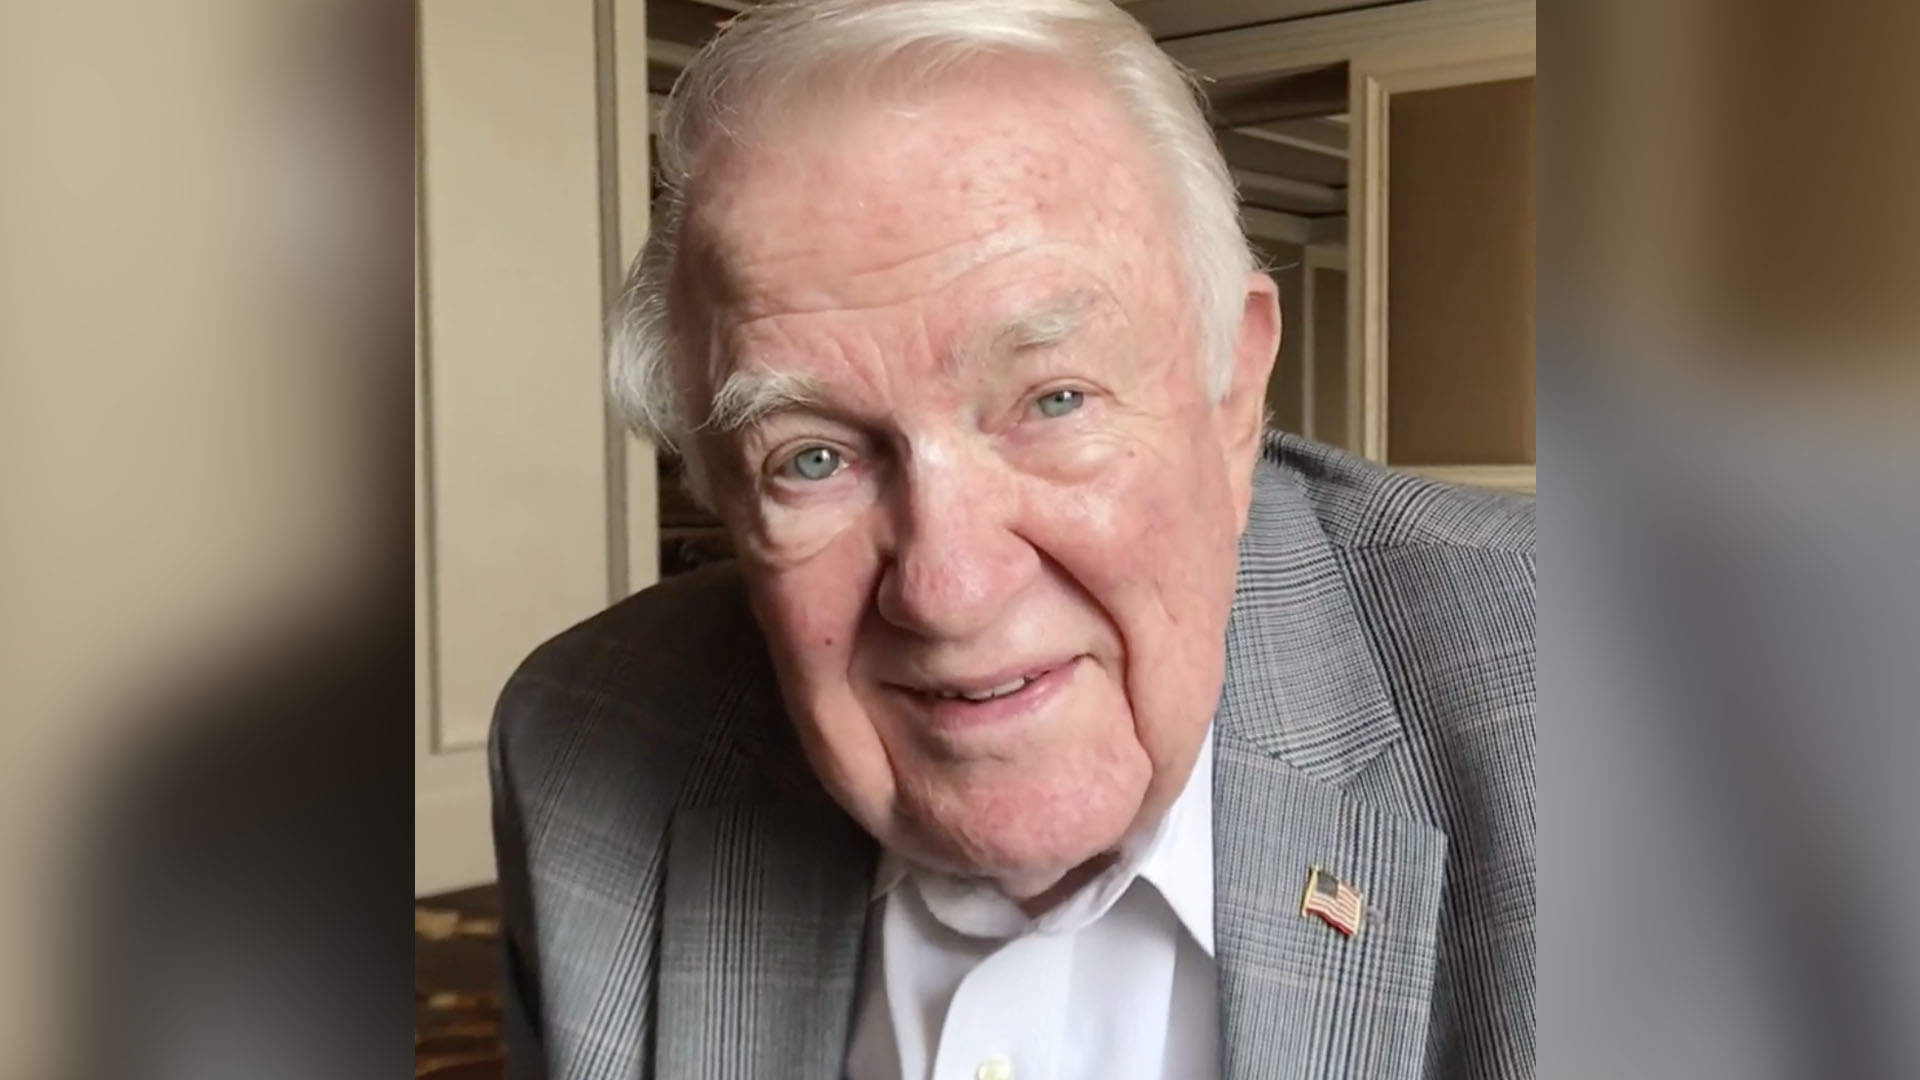 A Faith Journey with frmr. U.S. Attorney General, Edwin Meese